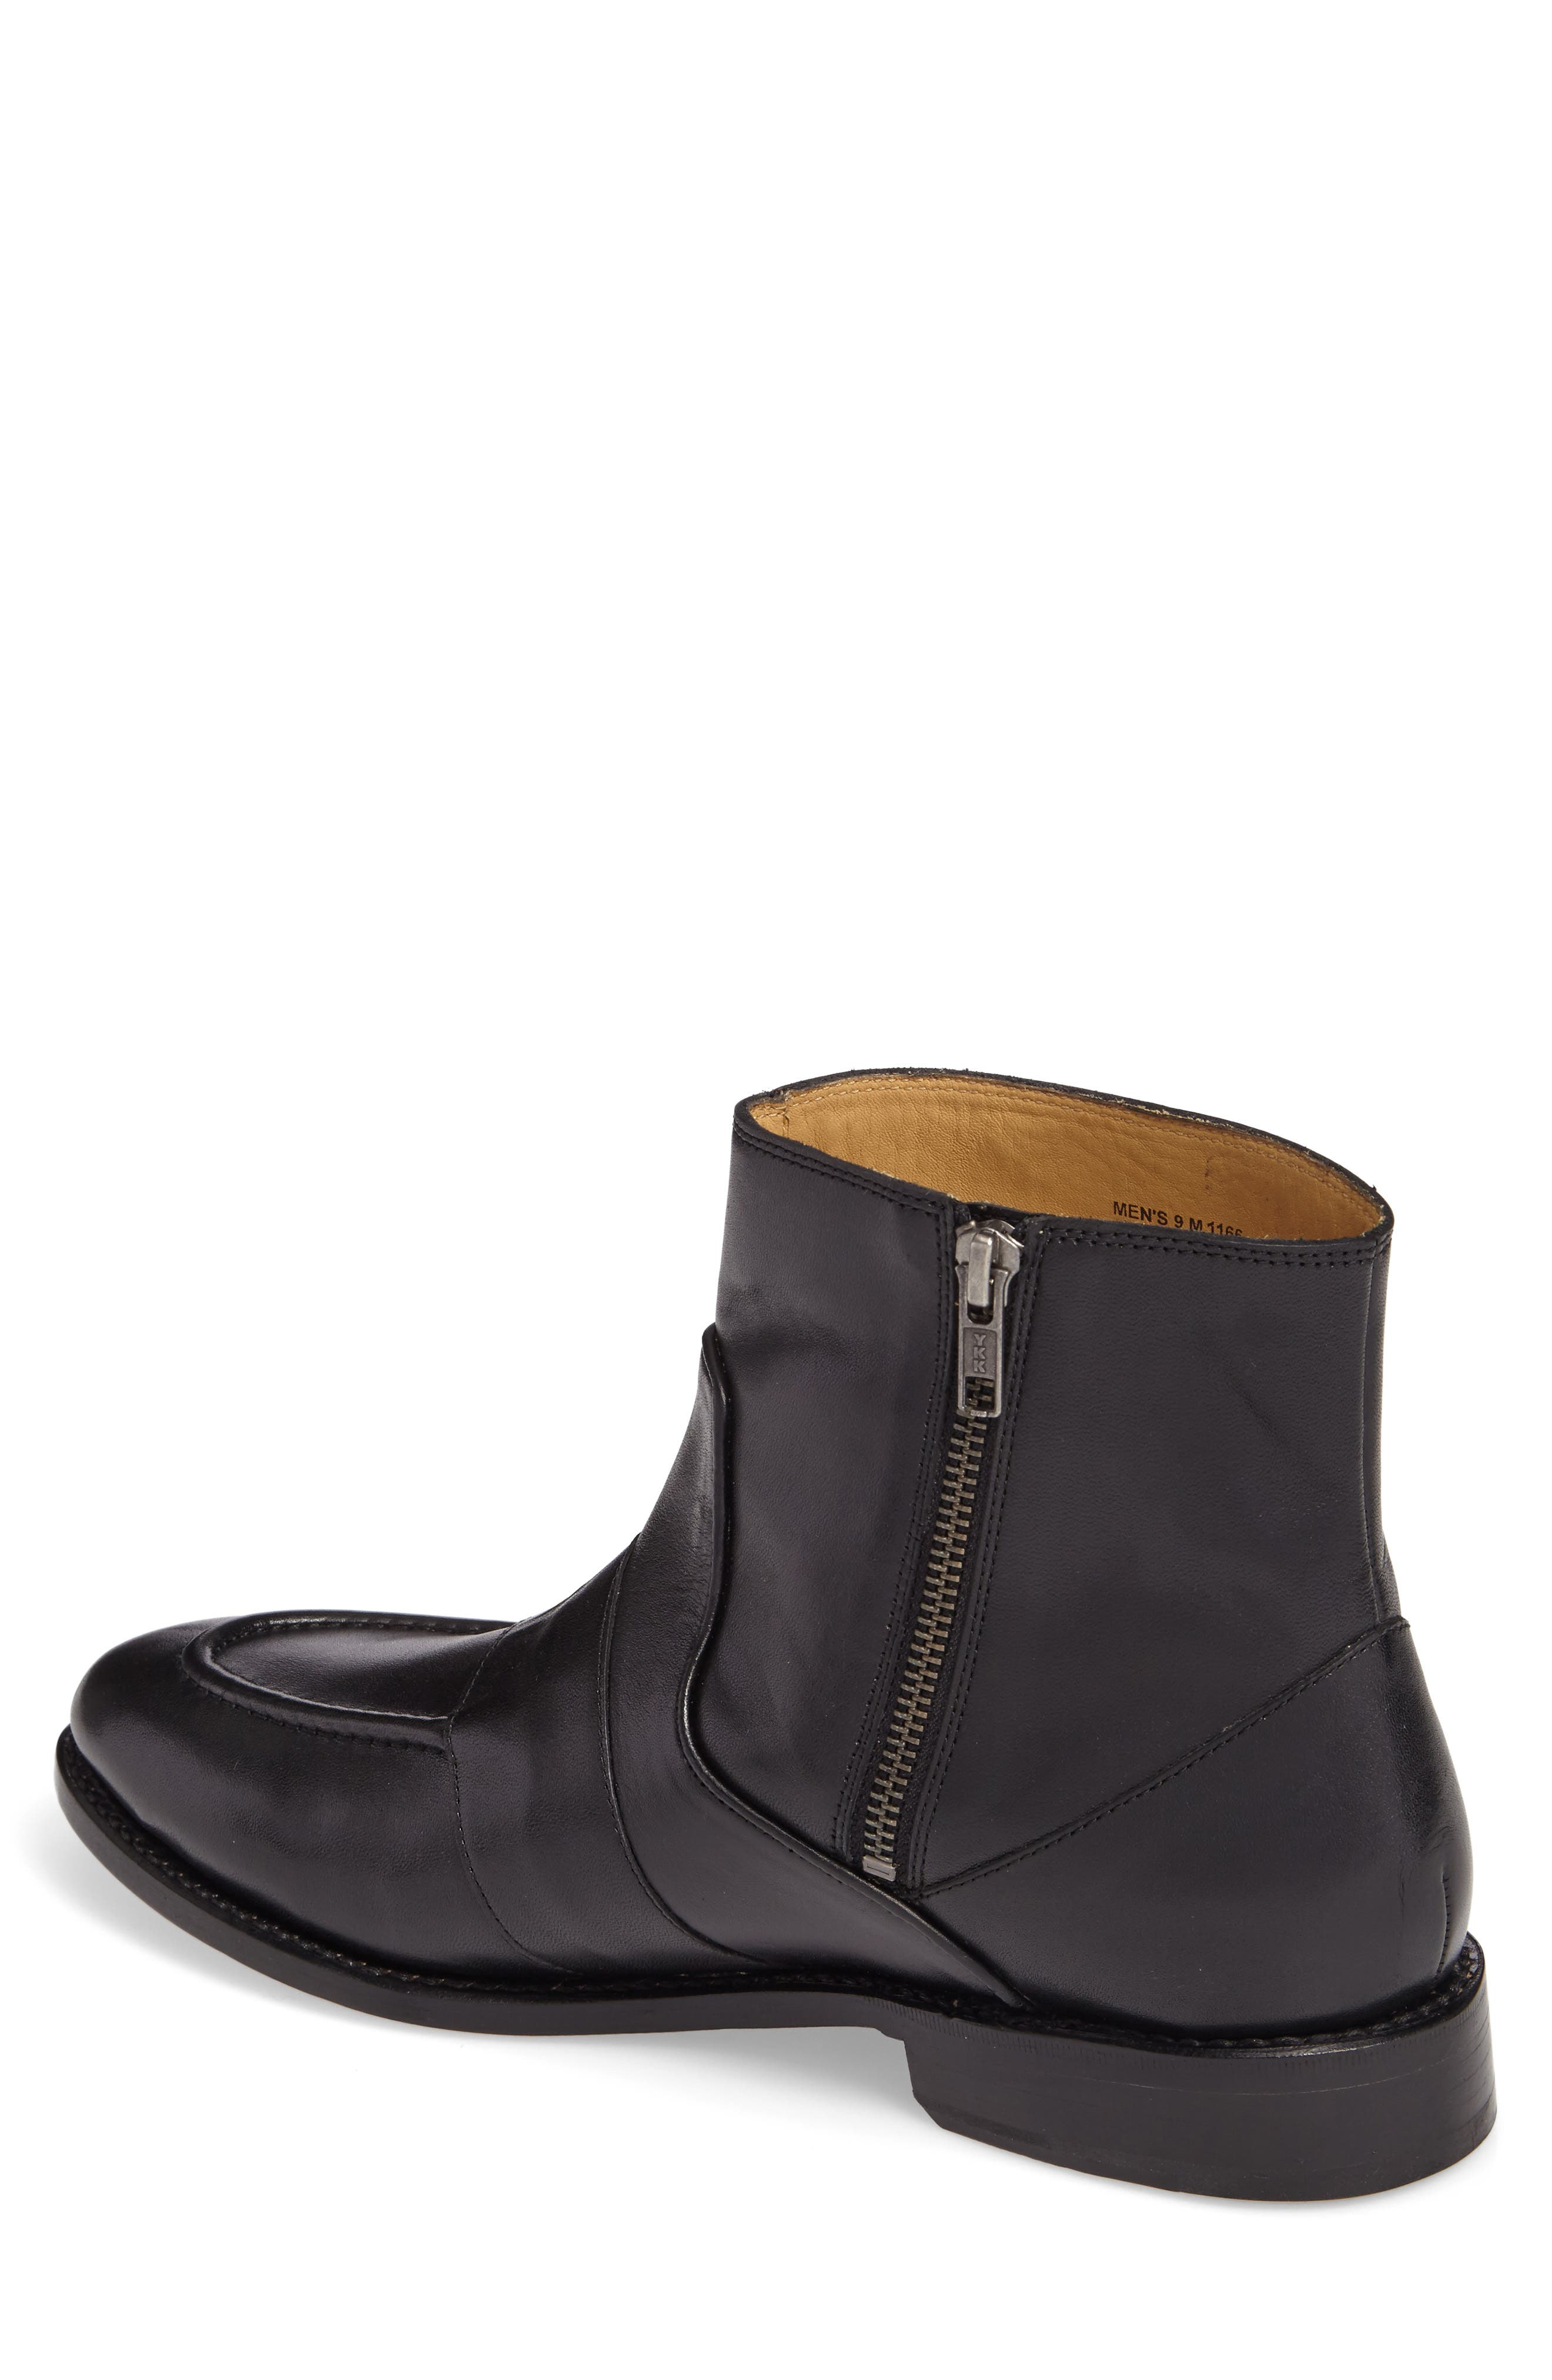 MICHAEL BASTIAN,                             Sidney Zip Boot,                             Alternate thumbnail 2, color,                             011